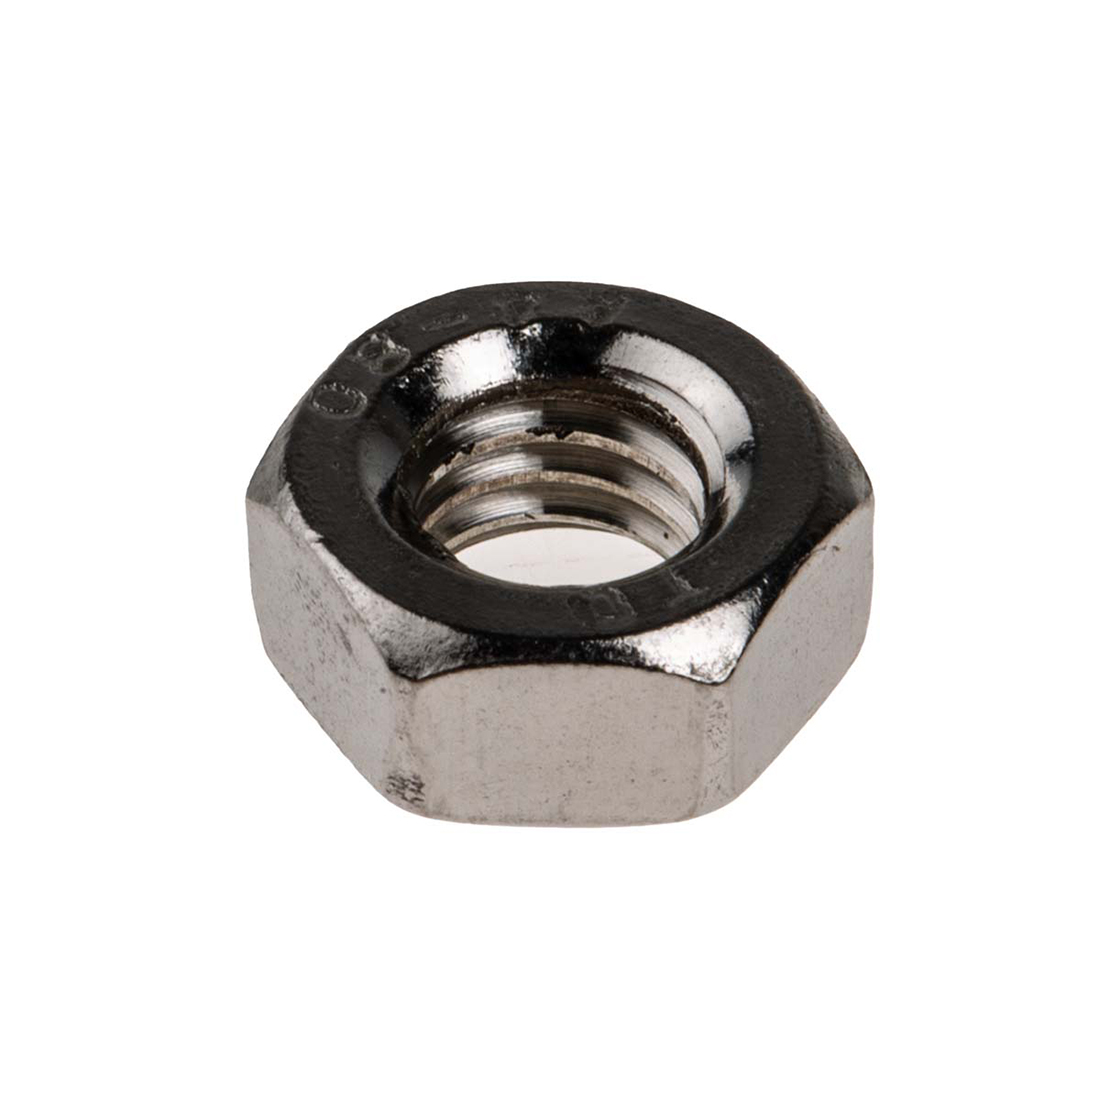 RS PRO Stainless Steel Hex Nut, Plain, M6 - 100 Pack